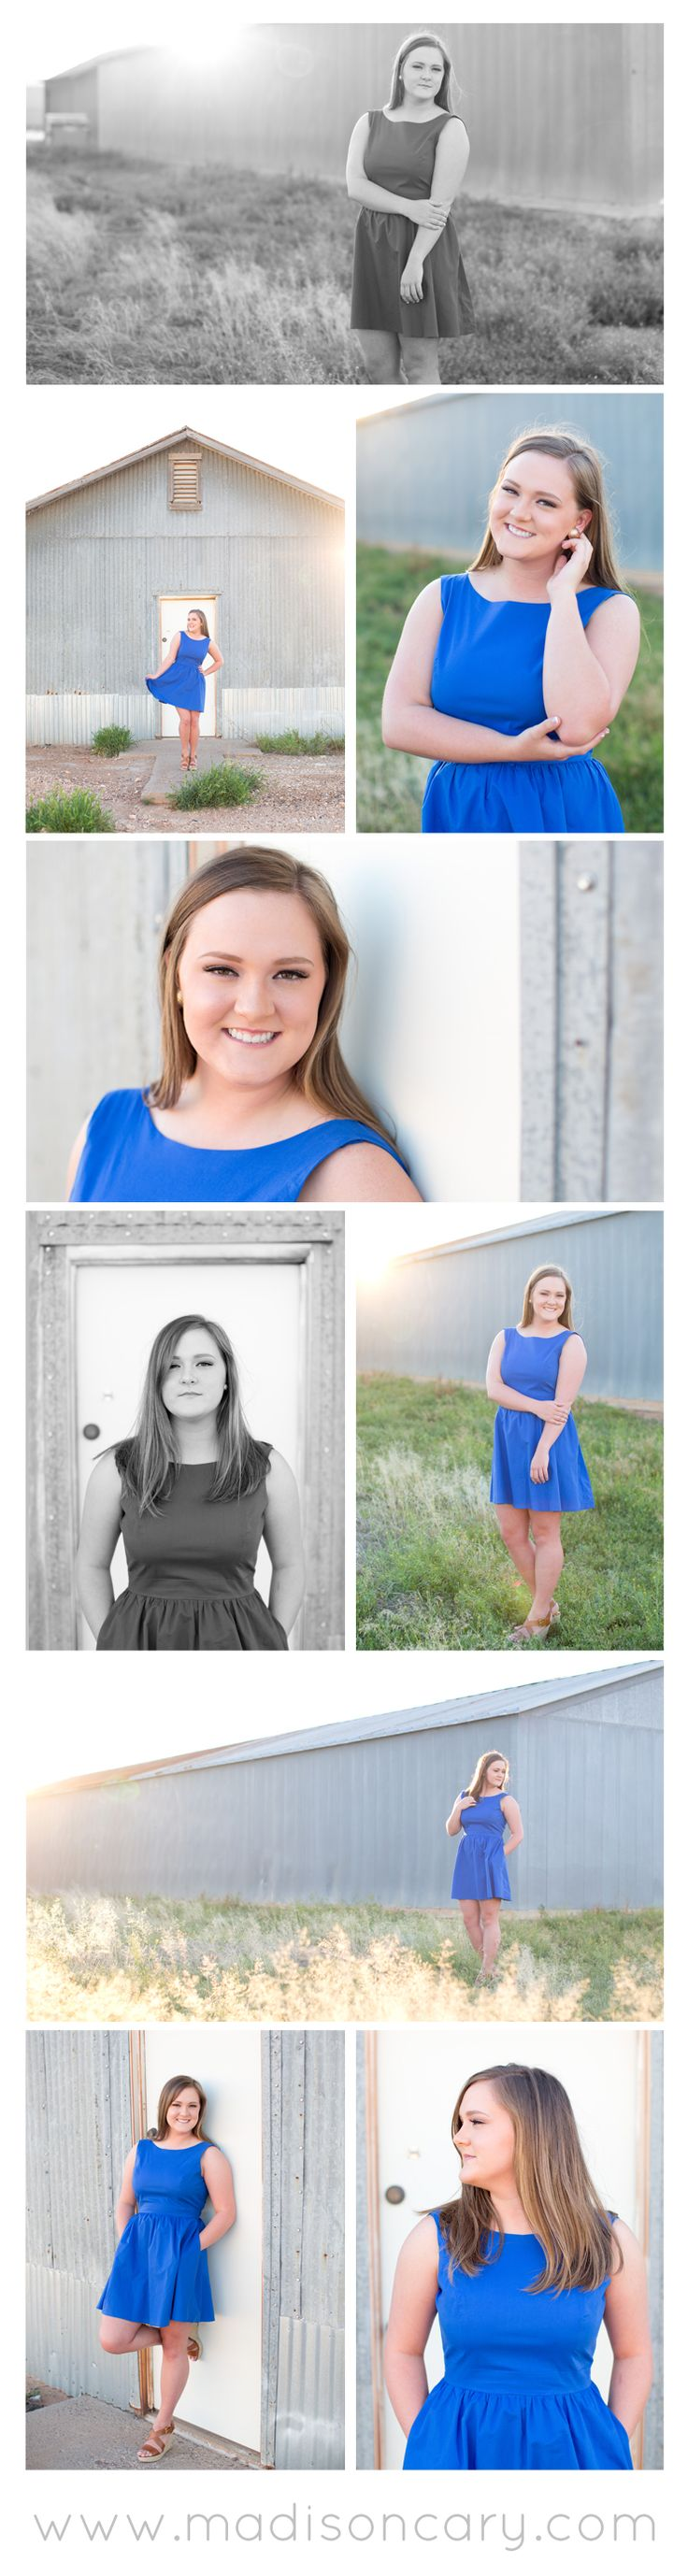 spring senior 2015 portraits // texas senior pictures // outfit ideas // madisoncary photography